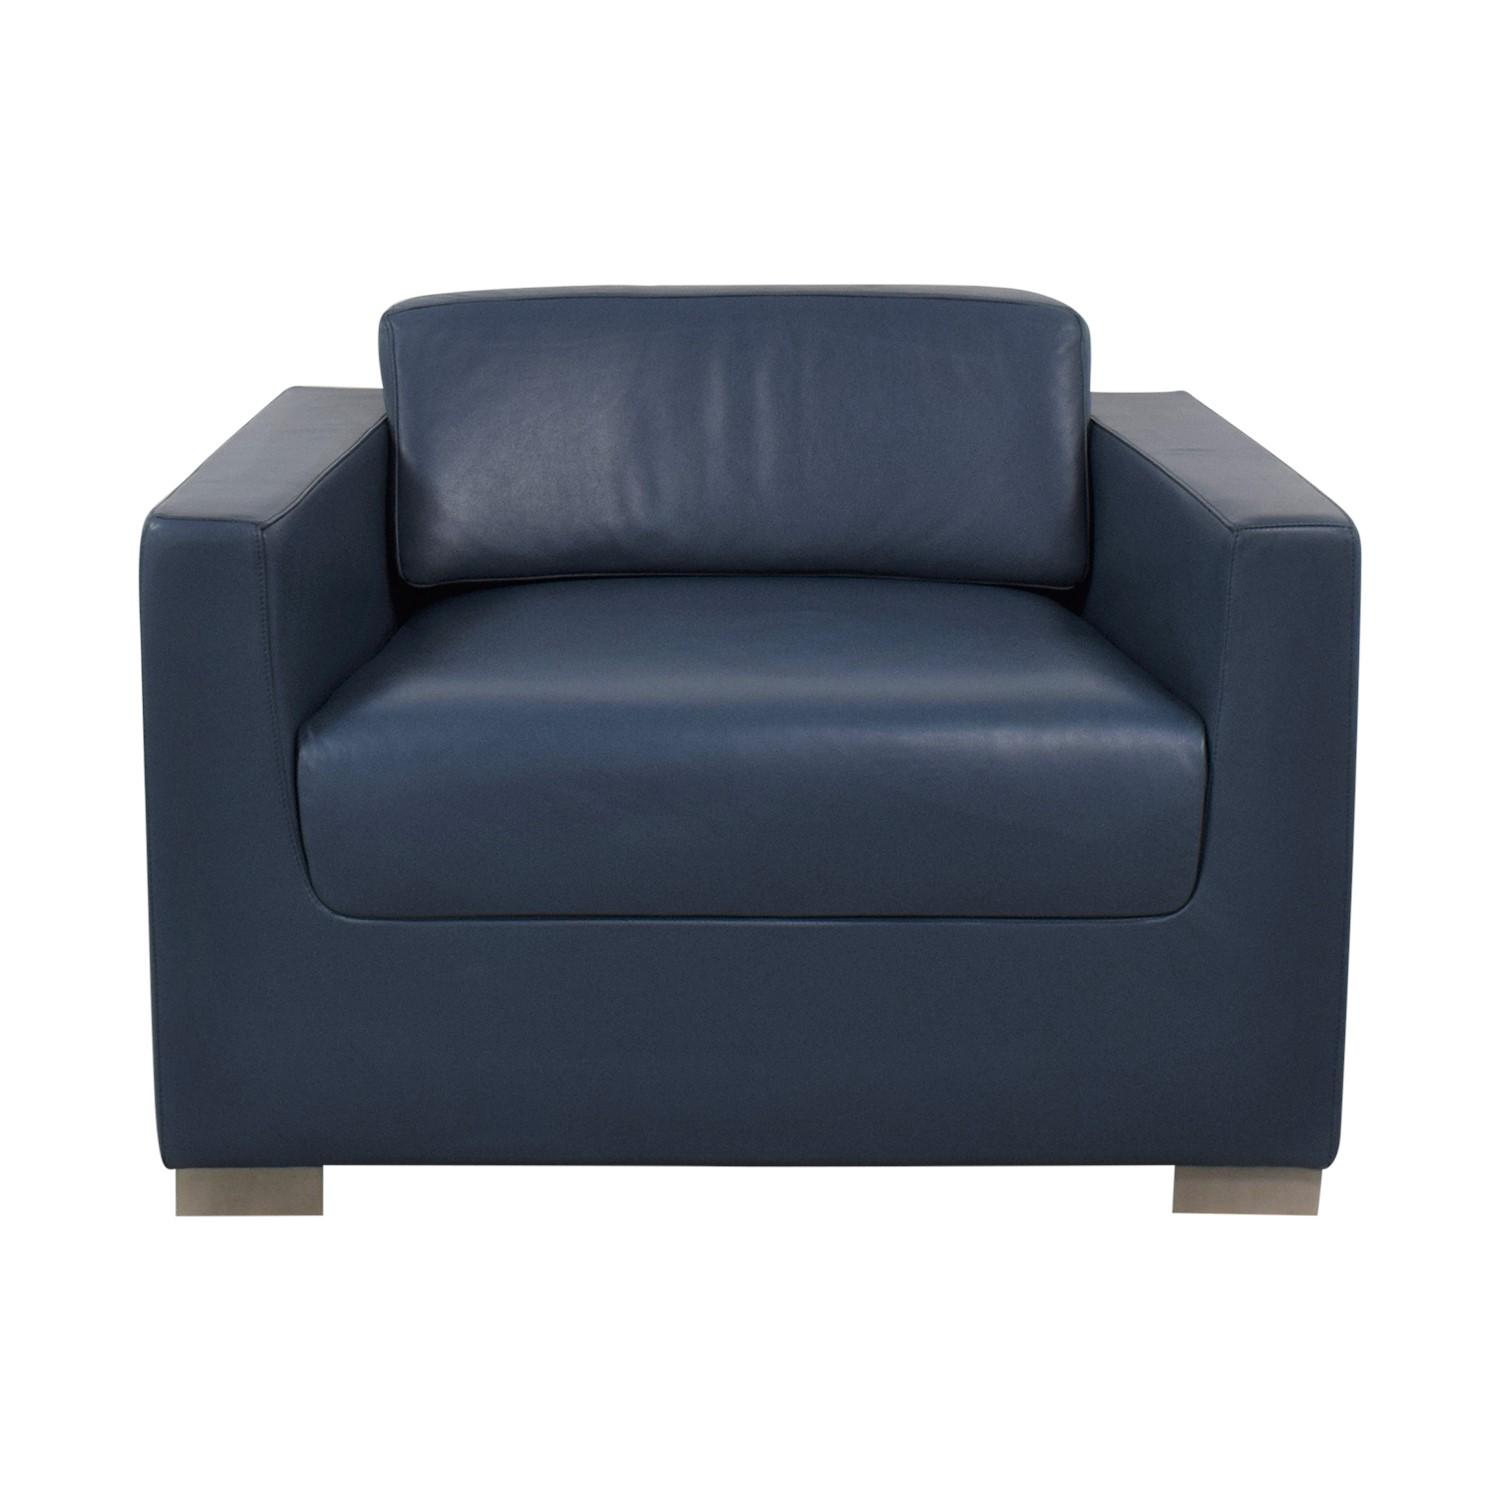 Bernhardt Bernhardt Design League Blue Leather Arm Chair on sale